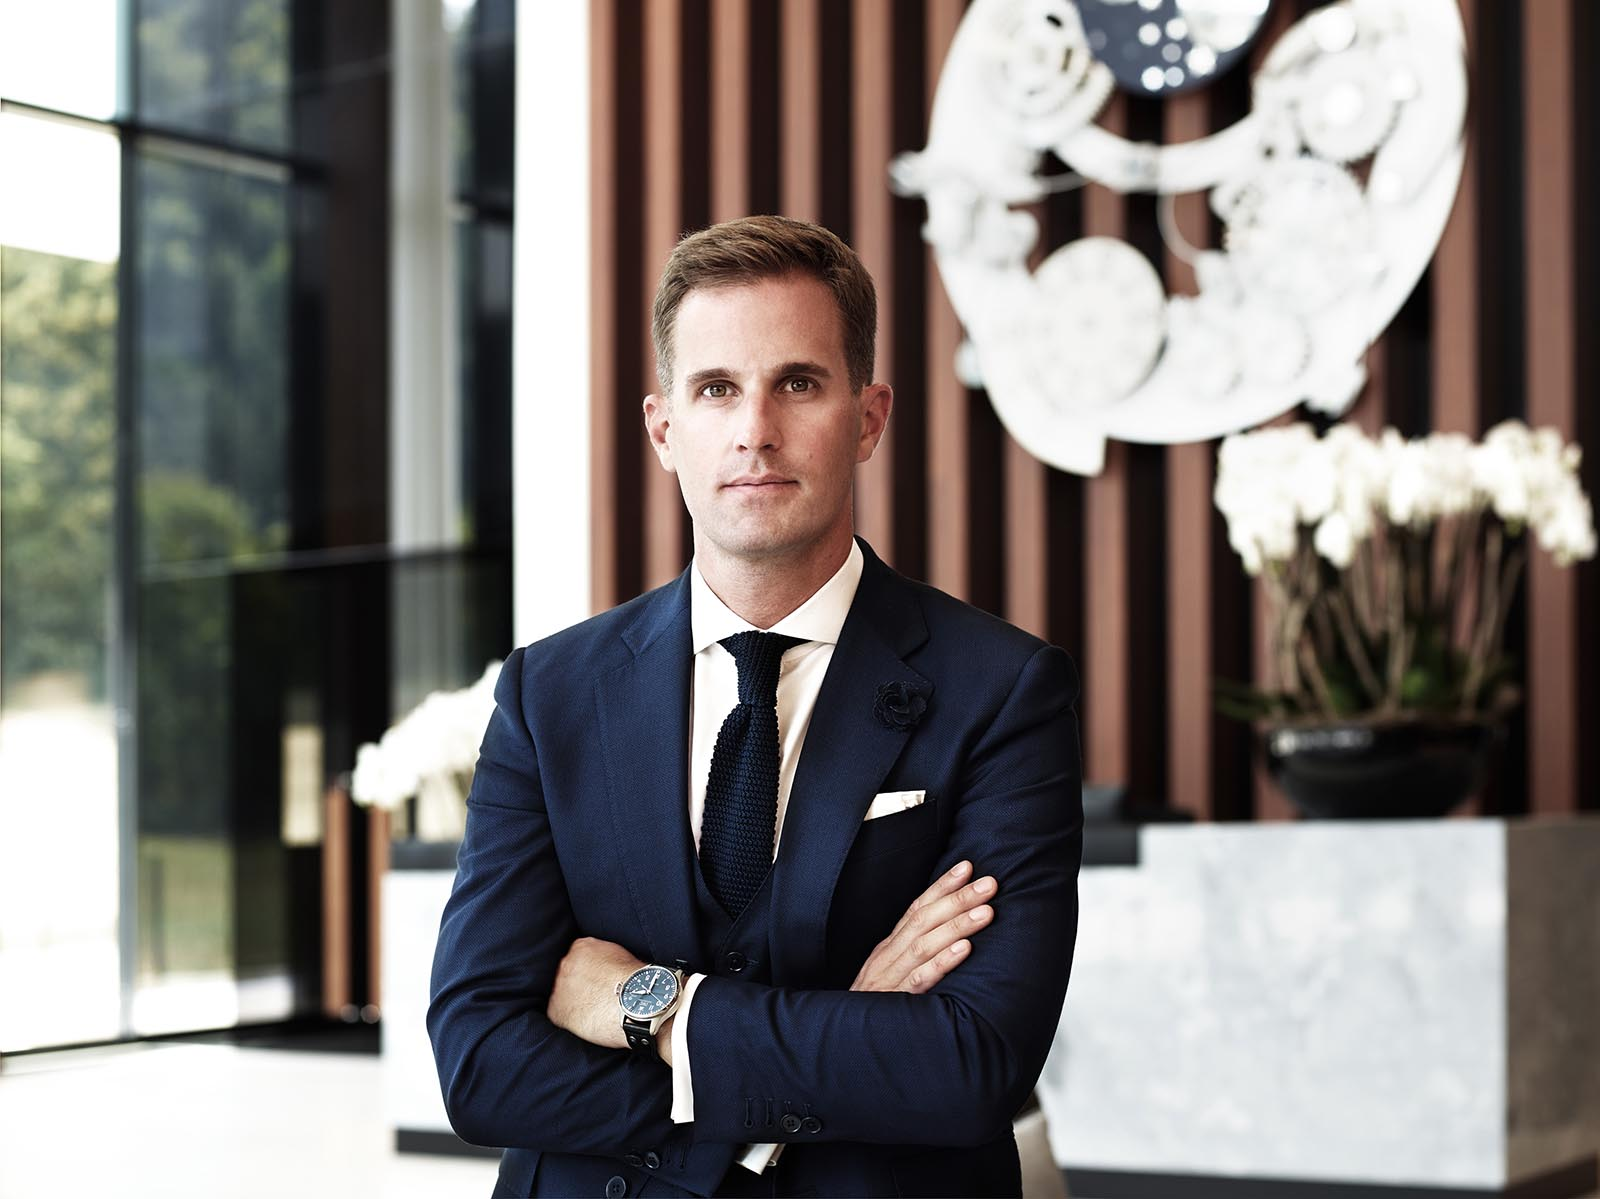 IWC CEO Christoph Grainger-Herr